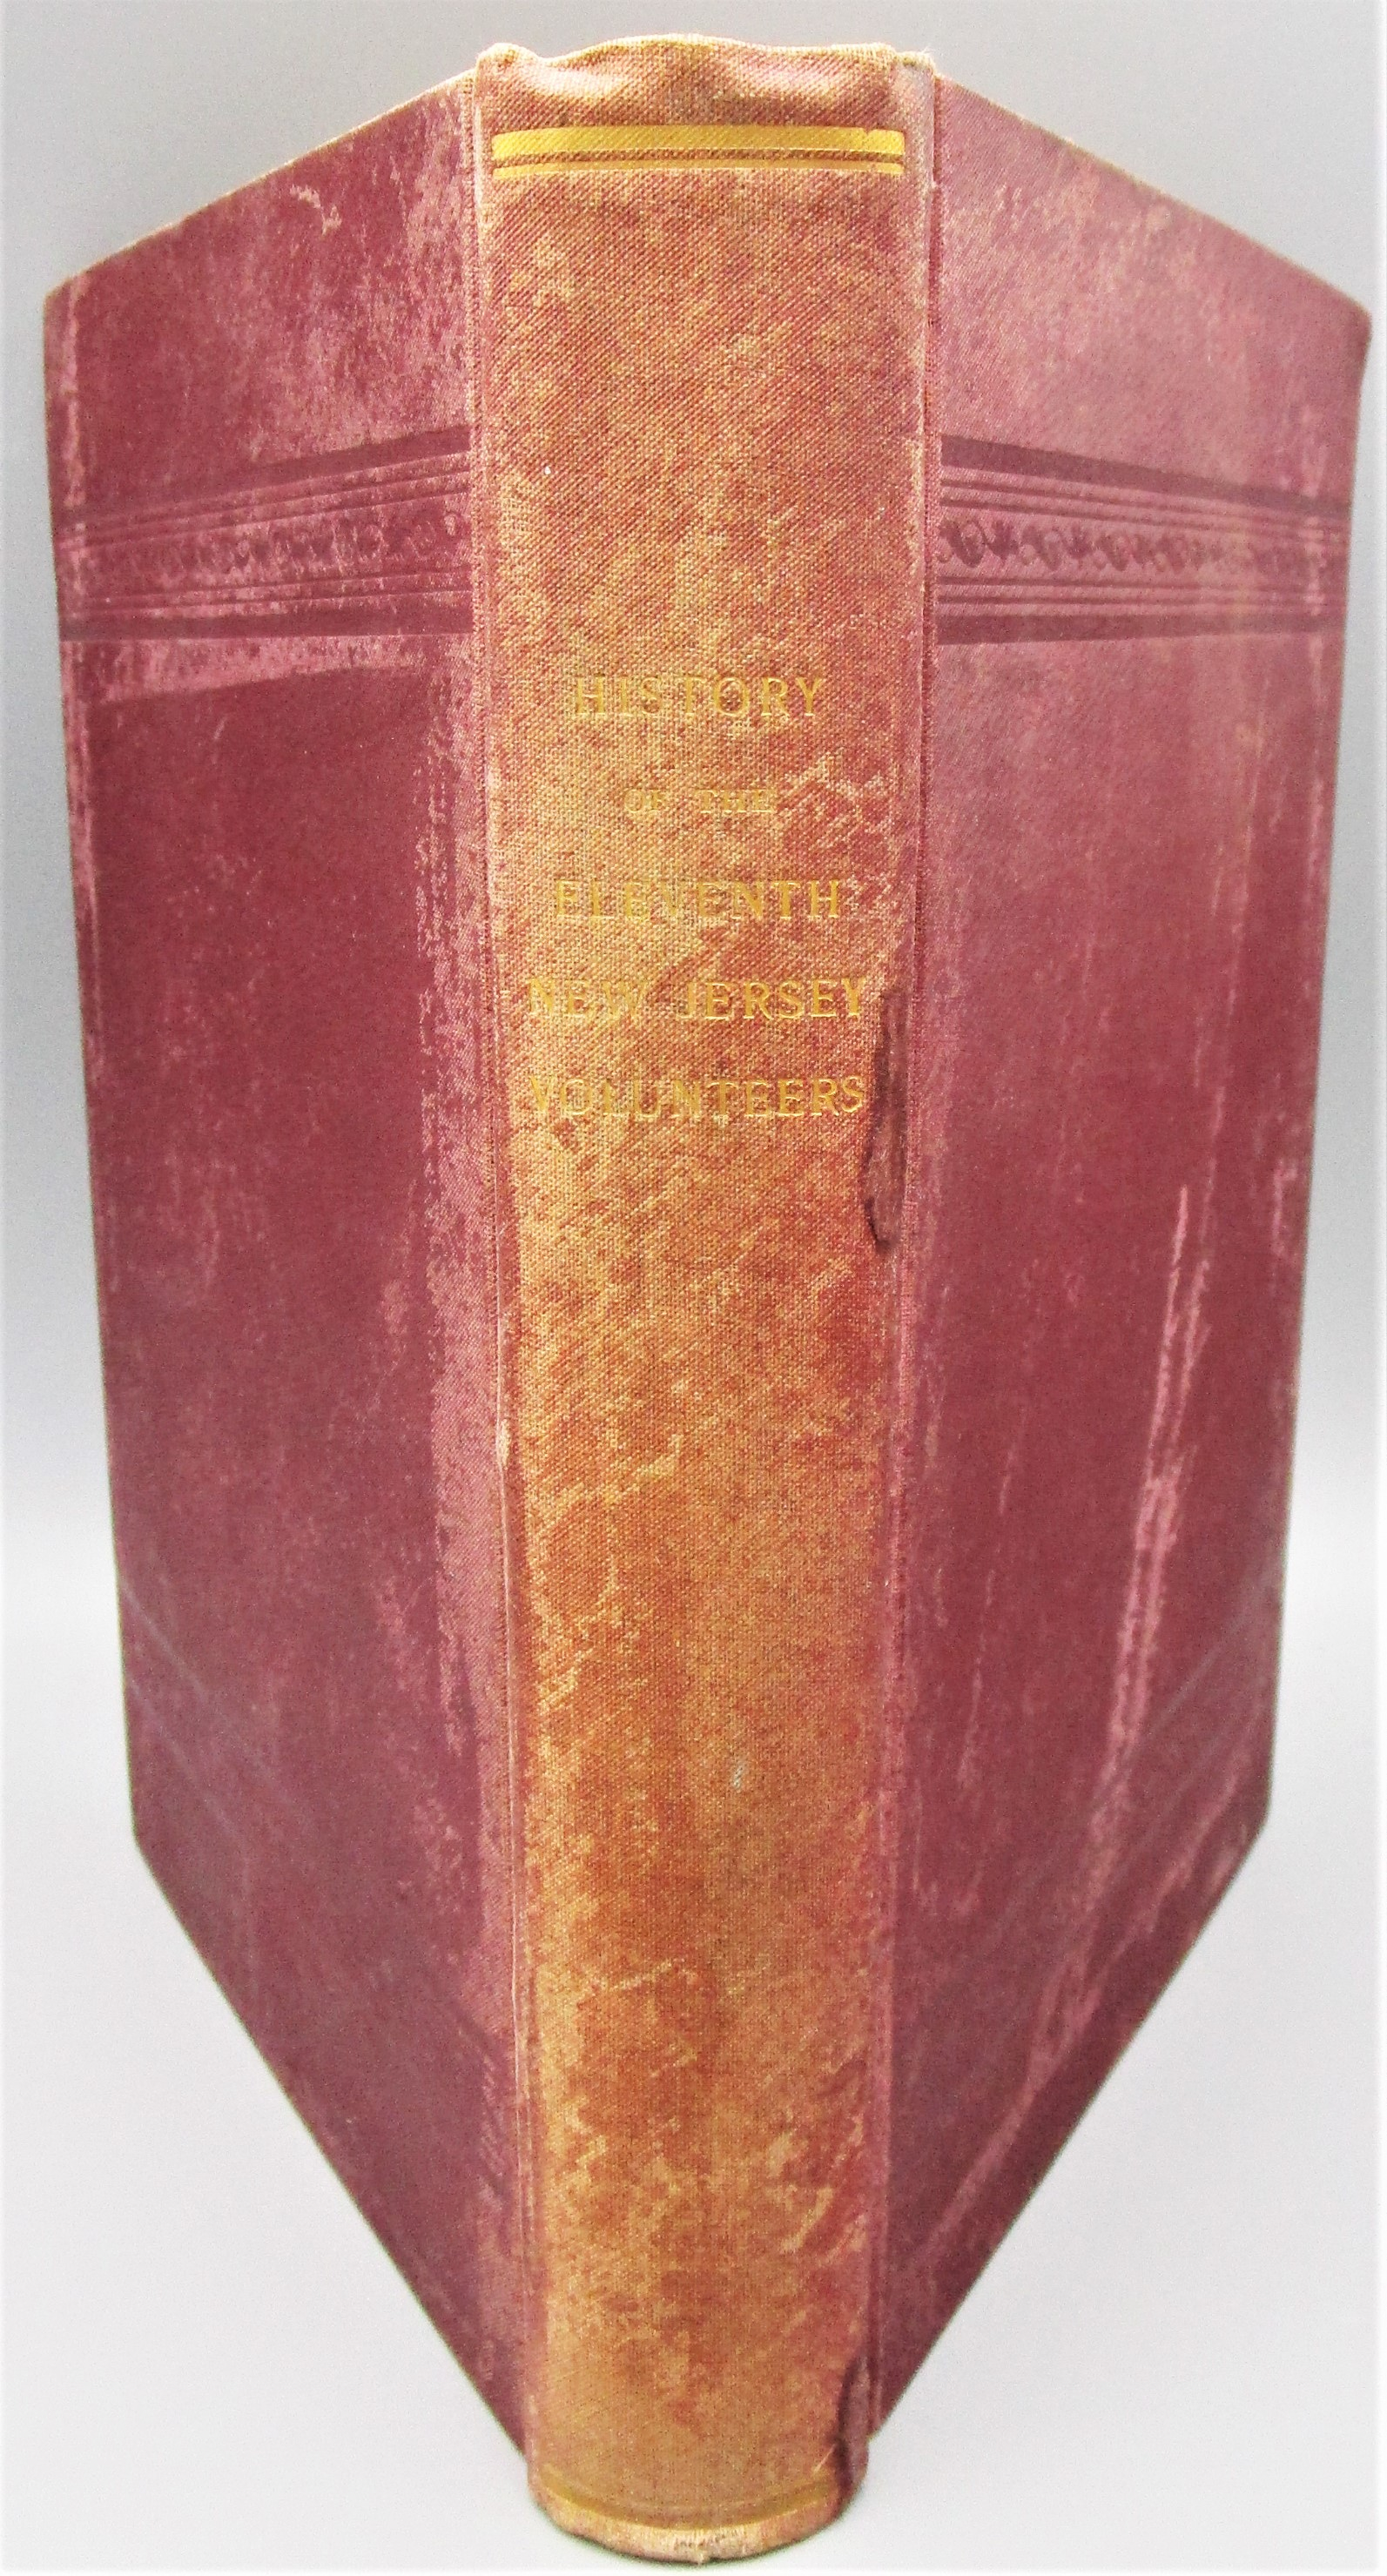 HISTORY OF THE ELEVENTH NEW JERSEY VOLUNTEERS, by Thos D. Marbaker - 1898 [1st Ed]